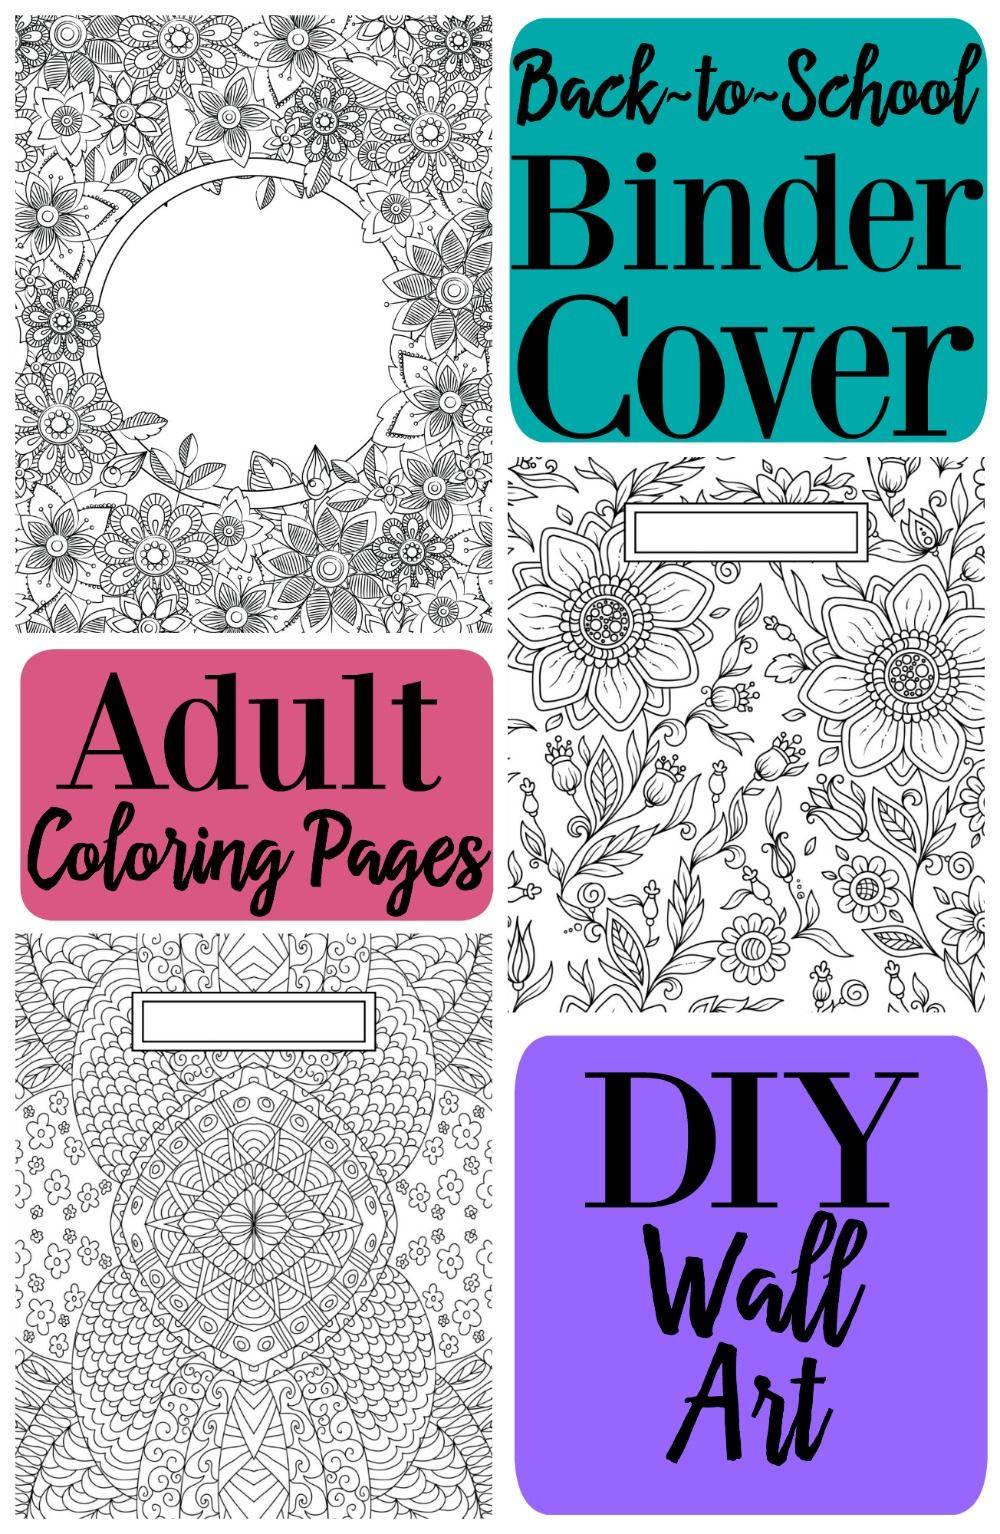 Back to School Binder Cover Adult Coloring Pages DIY Wall ...